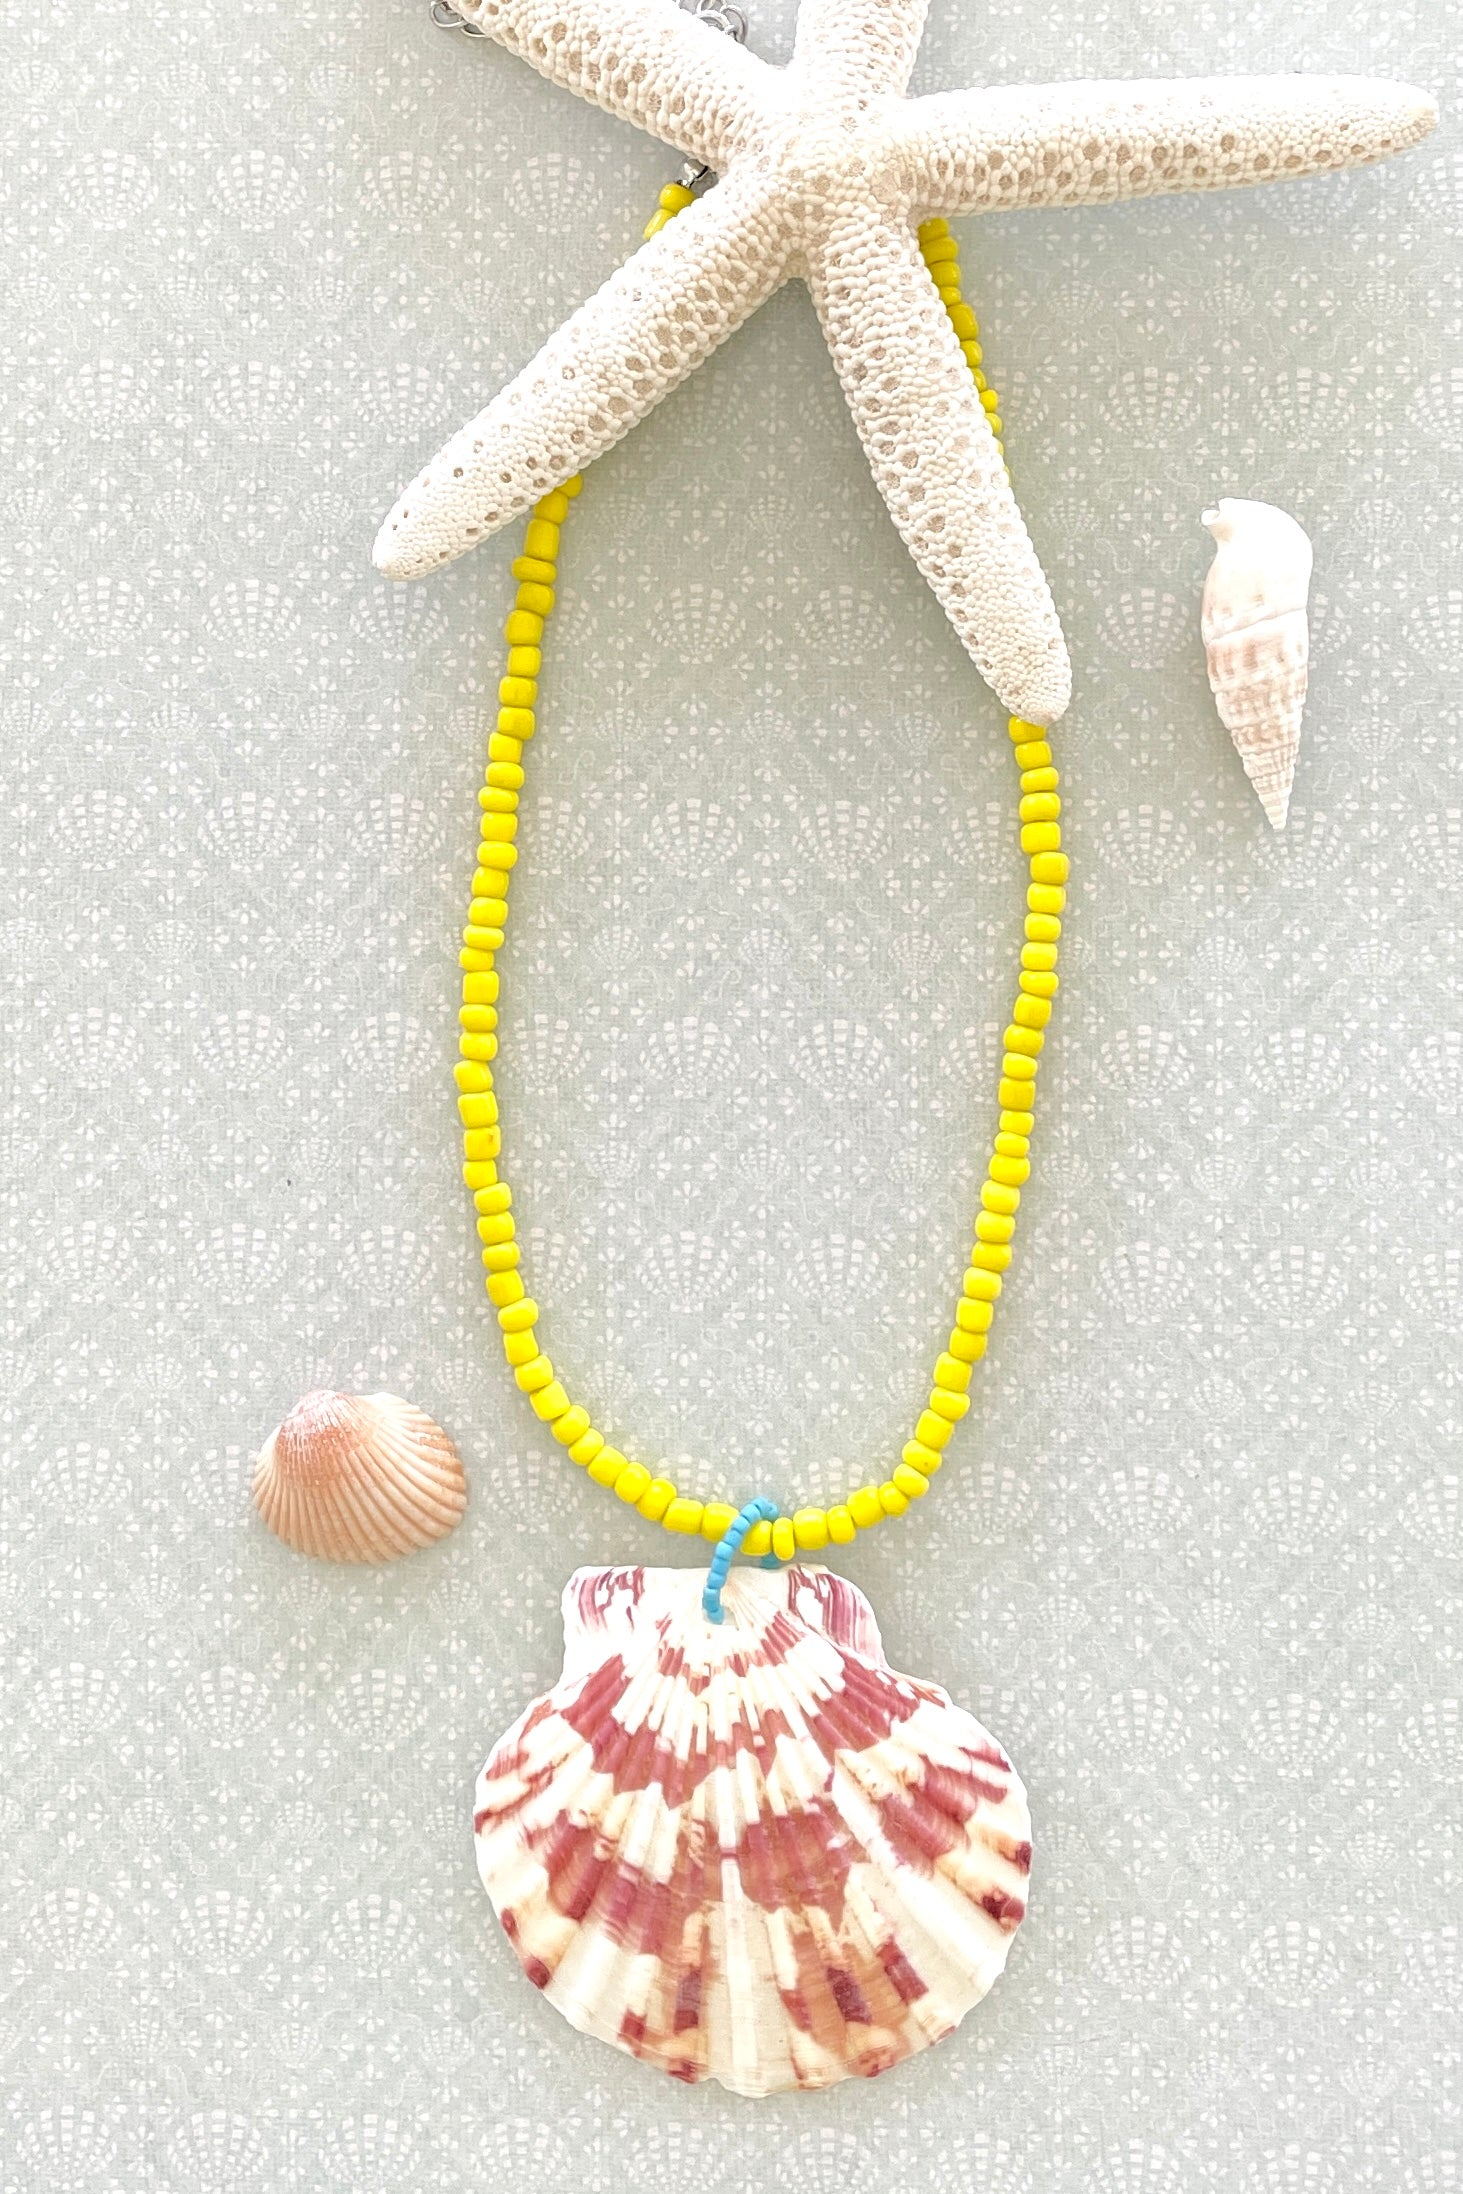 these collected sea shells all carry different patterns, no two ever alike and you can swim in this necklace! its strung on the brightest happy glass beads.